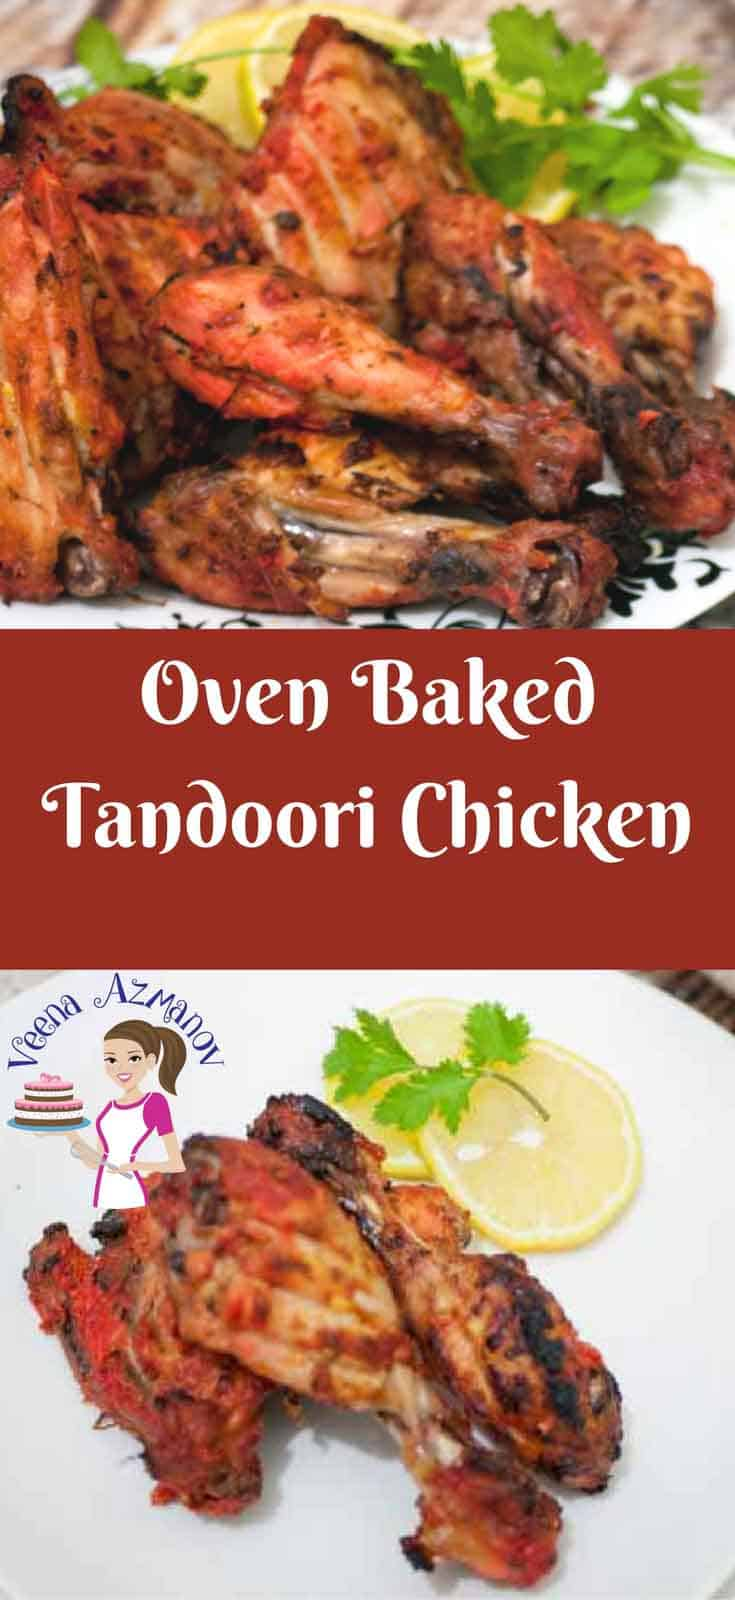 This classic Indian Tandoori Chicken is easier than you think to make at home. A good marinade, a hot oven for 30 minutes is all it takes to prepare these succulent chicken legs.